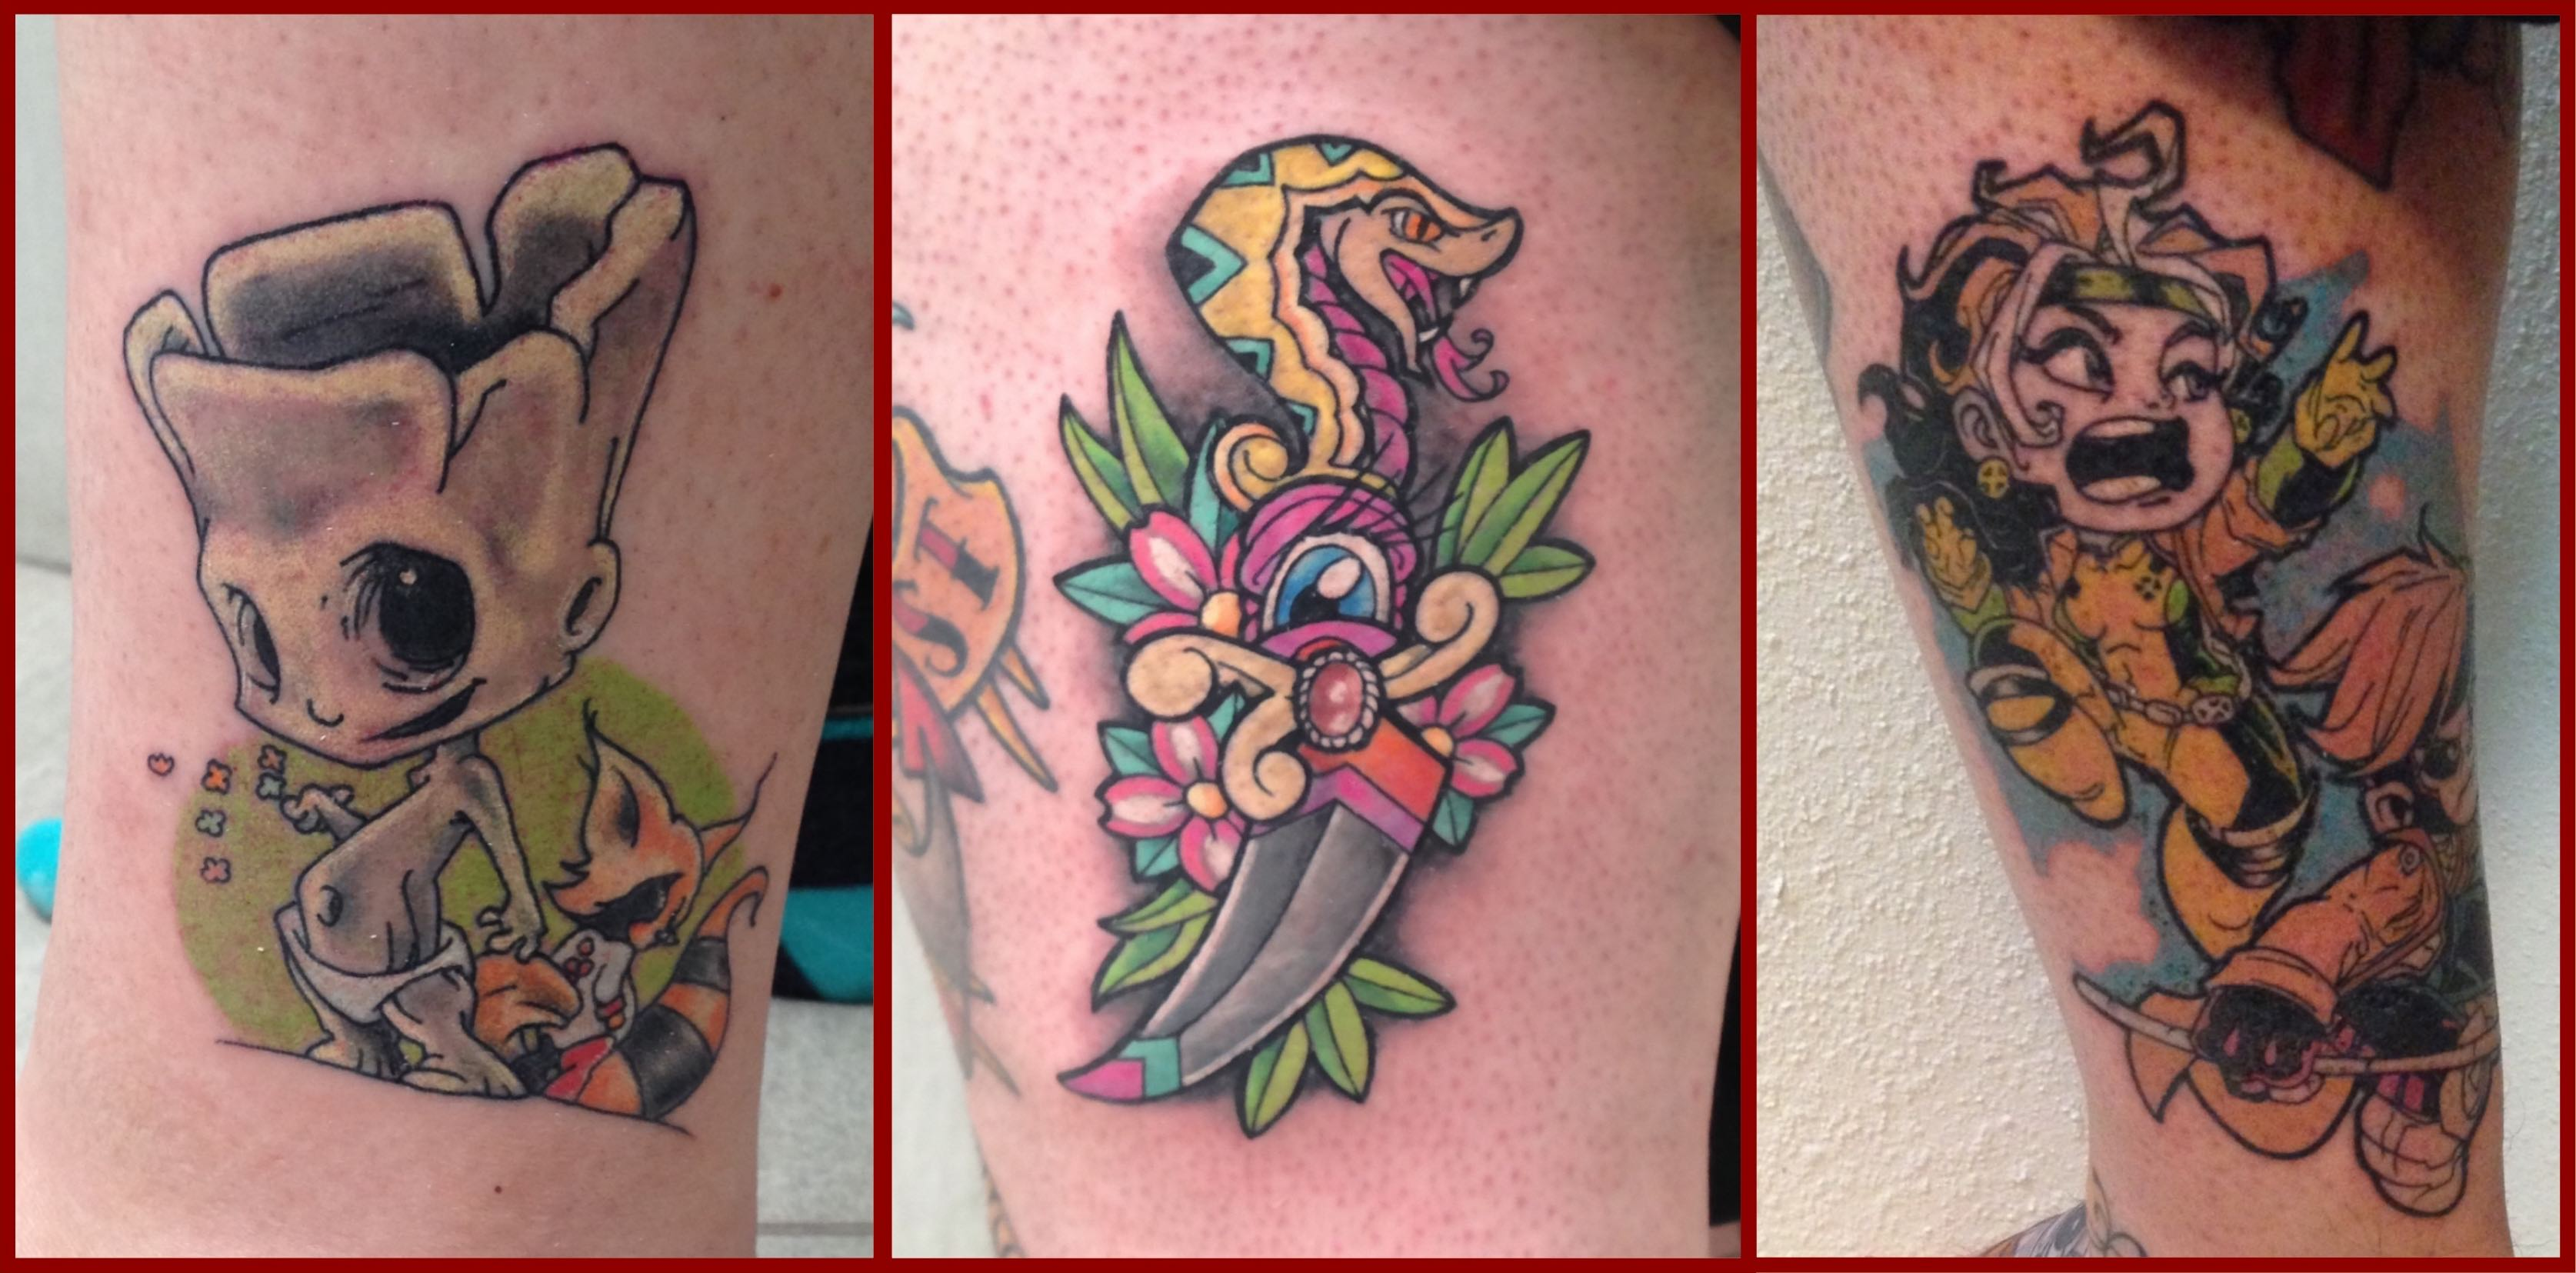 A selection of tattoos done by Alastair Magee